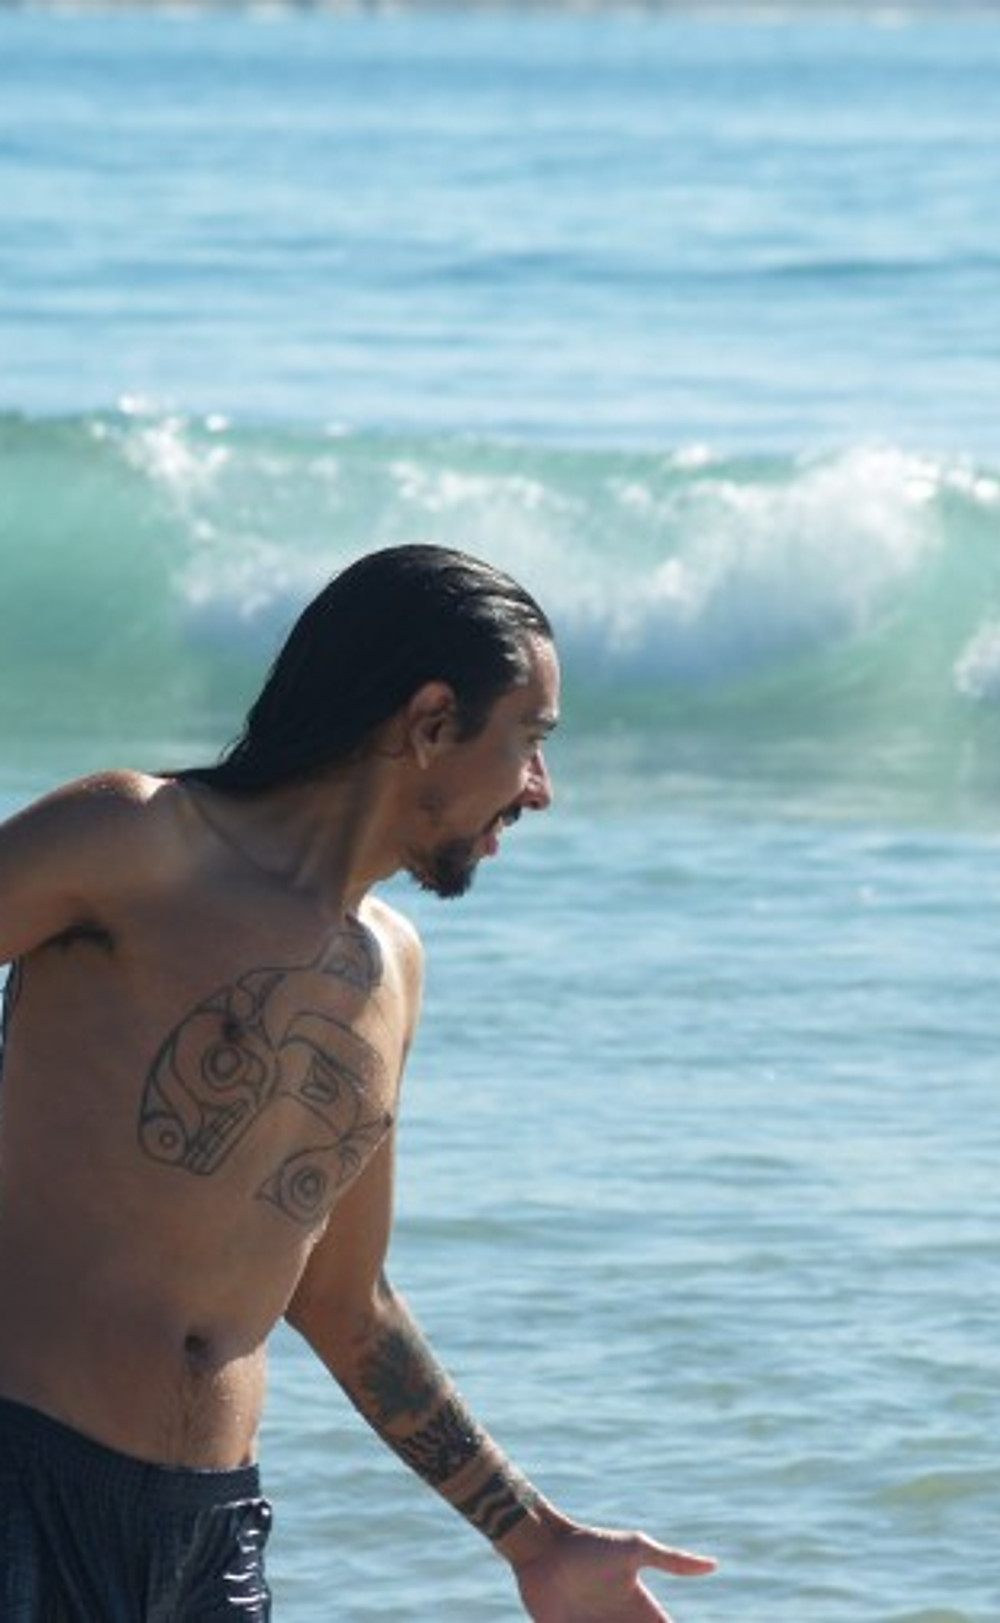 Photo of Nahaan as he enjoys the surf from last years New Zealand trip